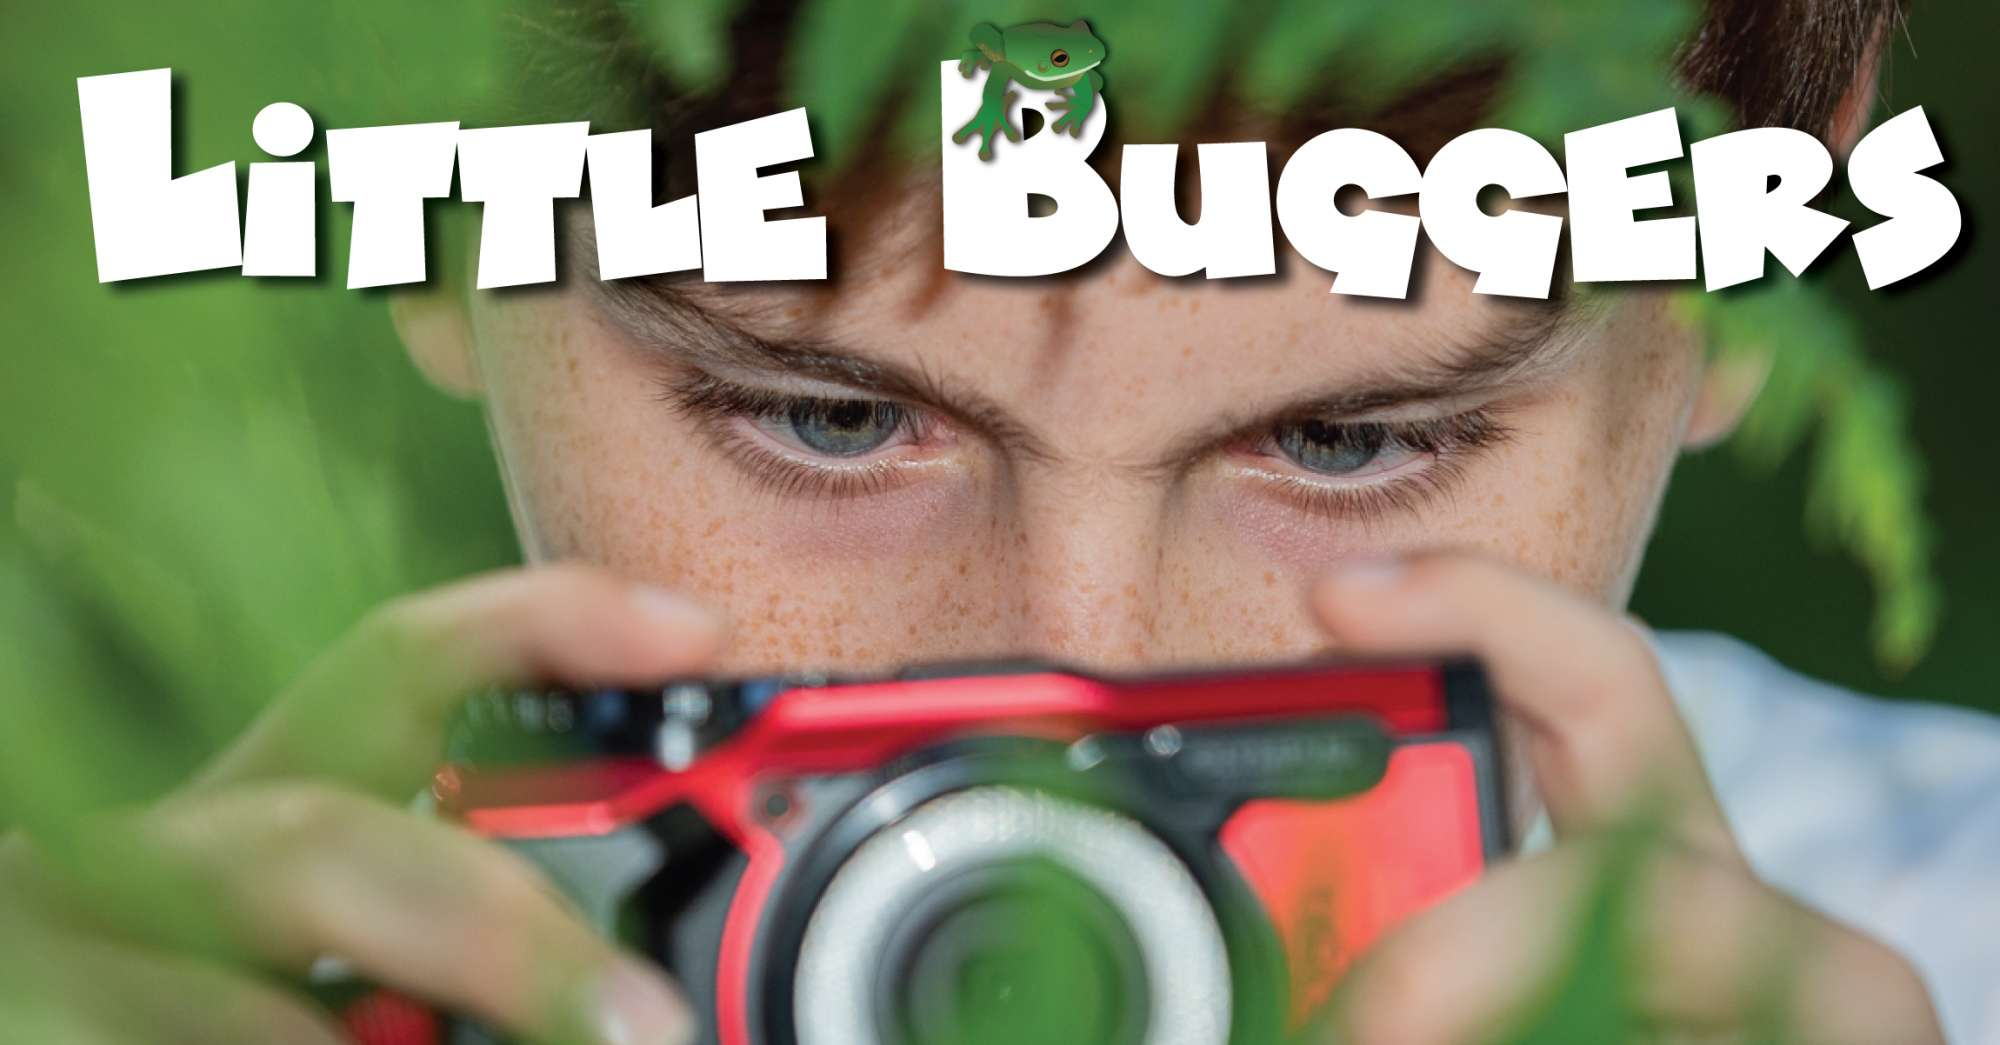 A boy with a small red camera and 'Little buggers' logo